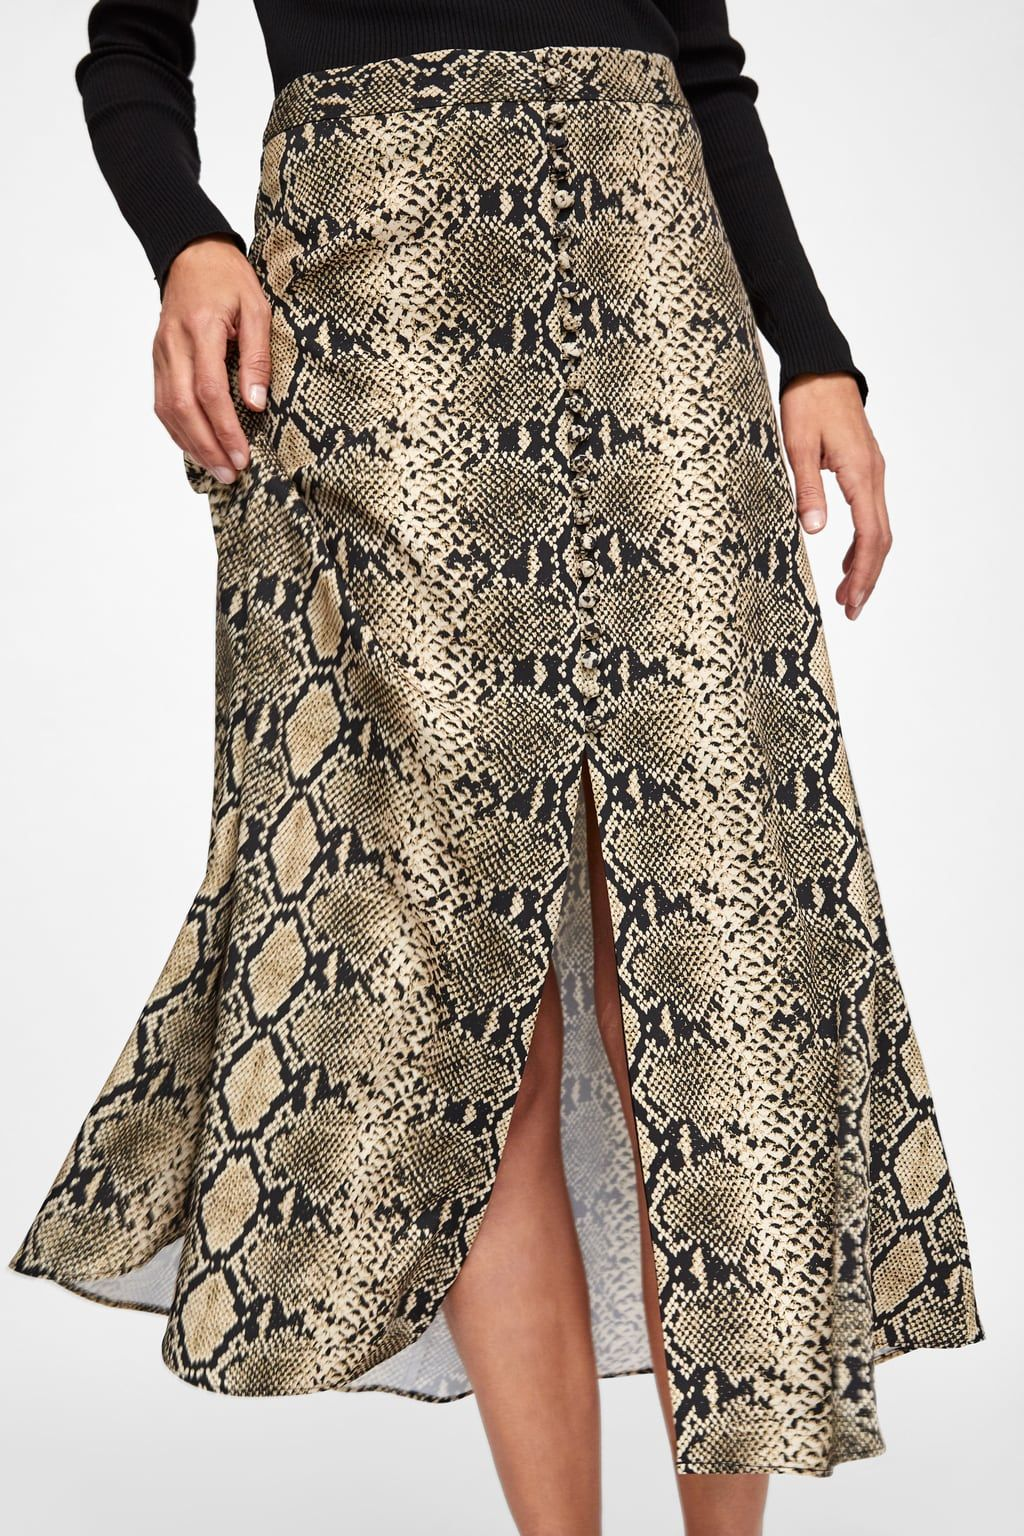 024d1f298c Image 6 of SNAKE PRINT SKIRT from Zara | SKIRTS | Printed skirts ...